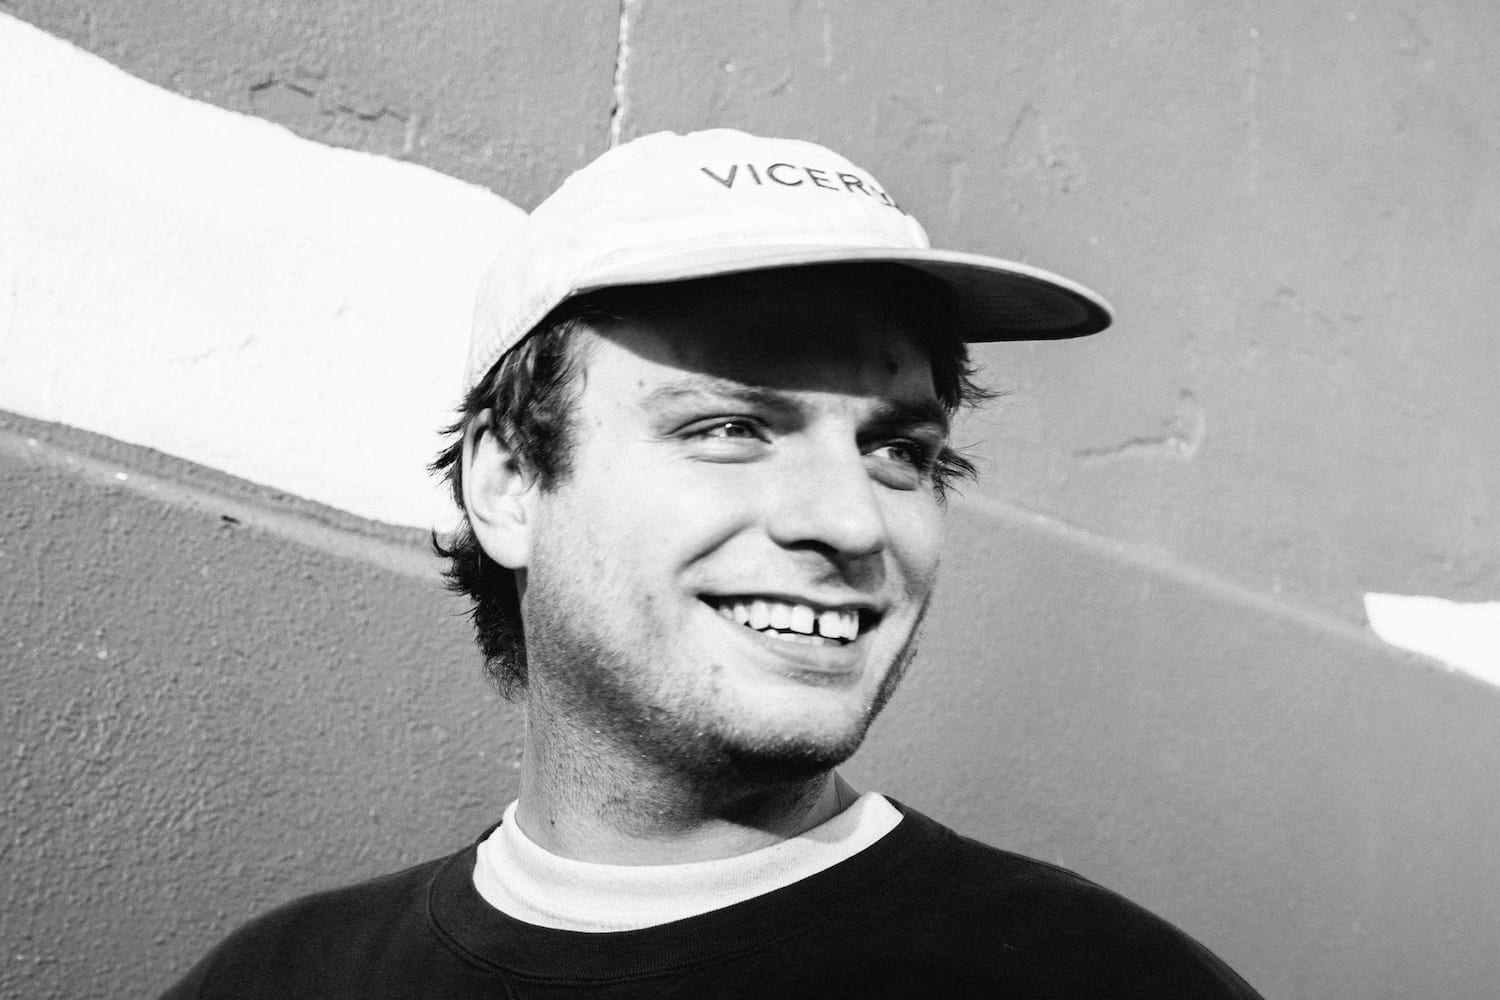 Live Review: Mac DeMarco // KOKO, London 28.06.16